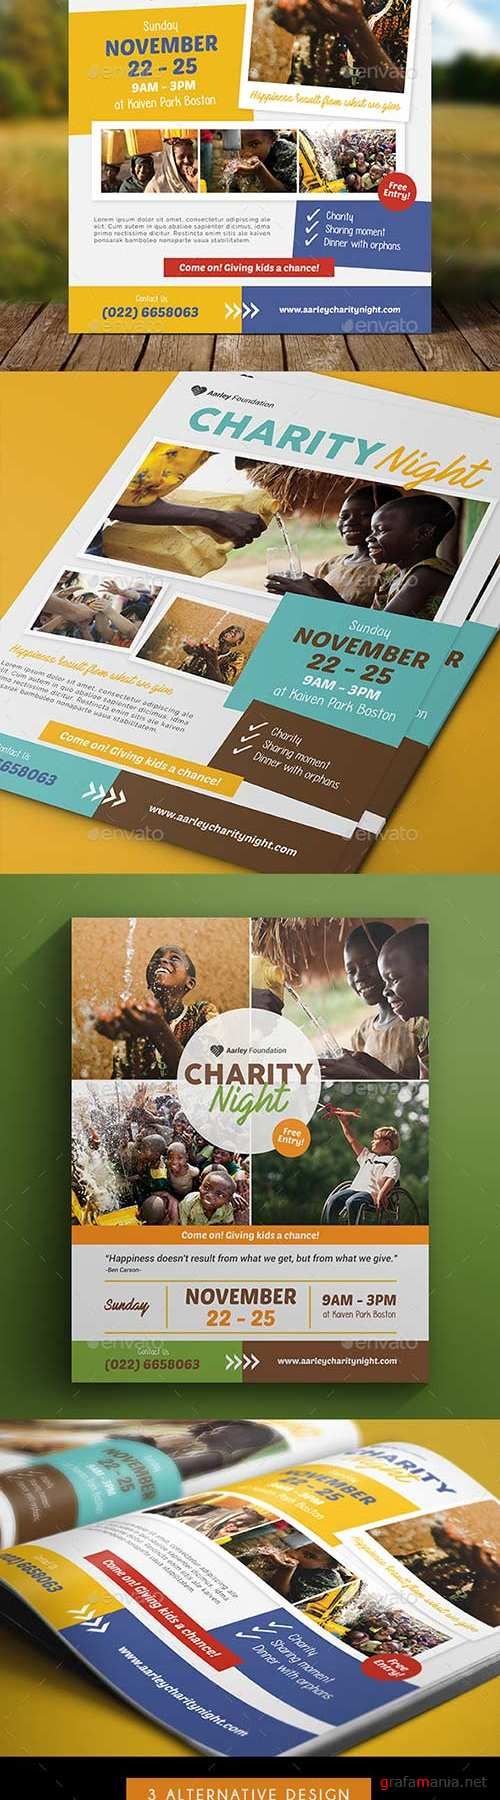 GR - Charity Event Flyer 19076696